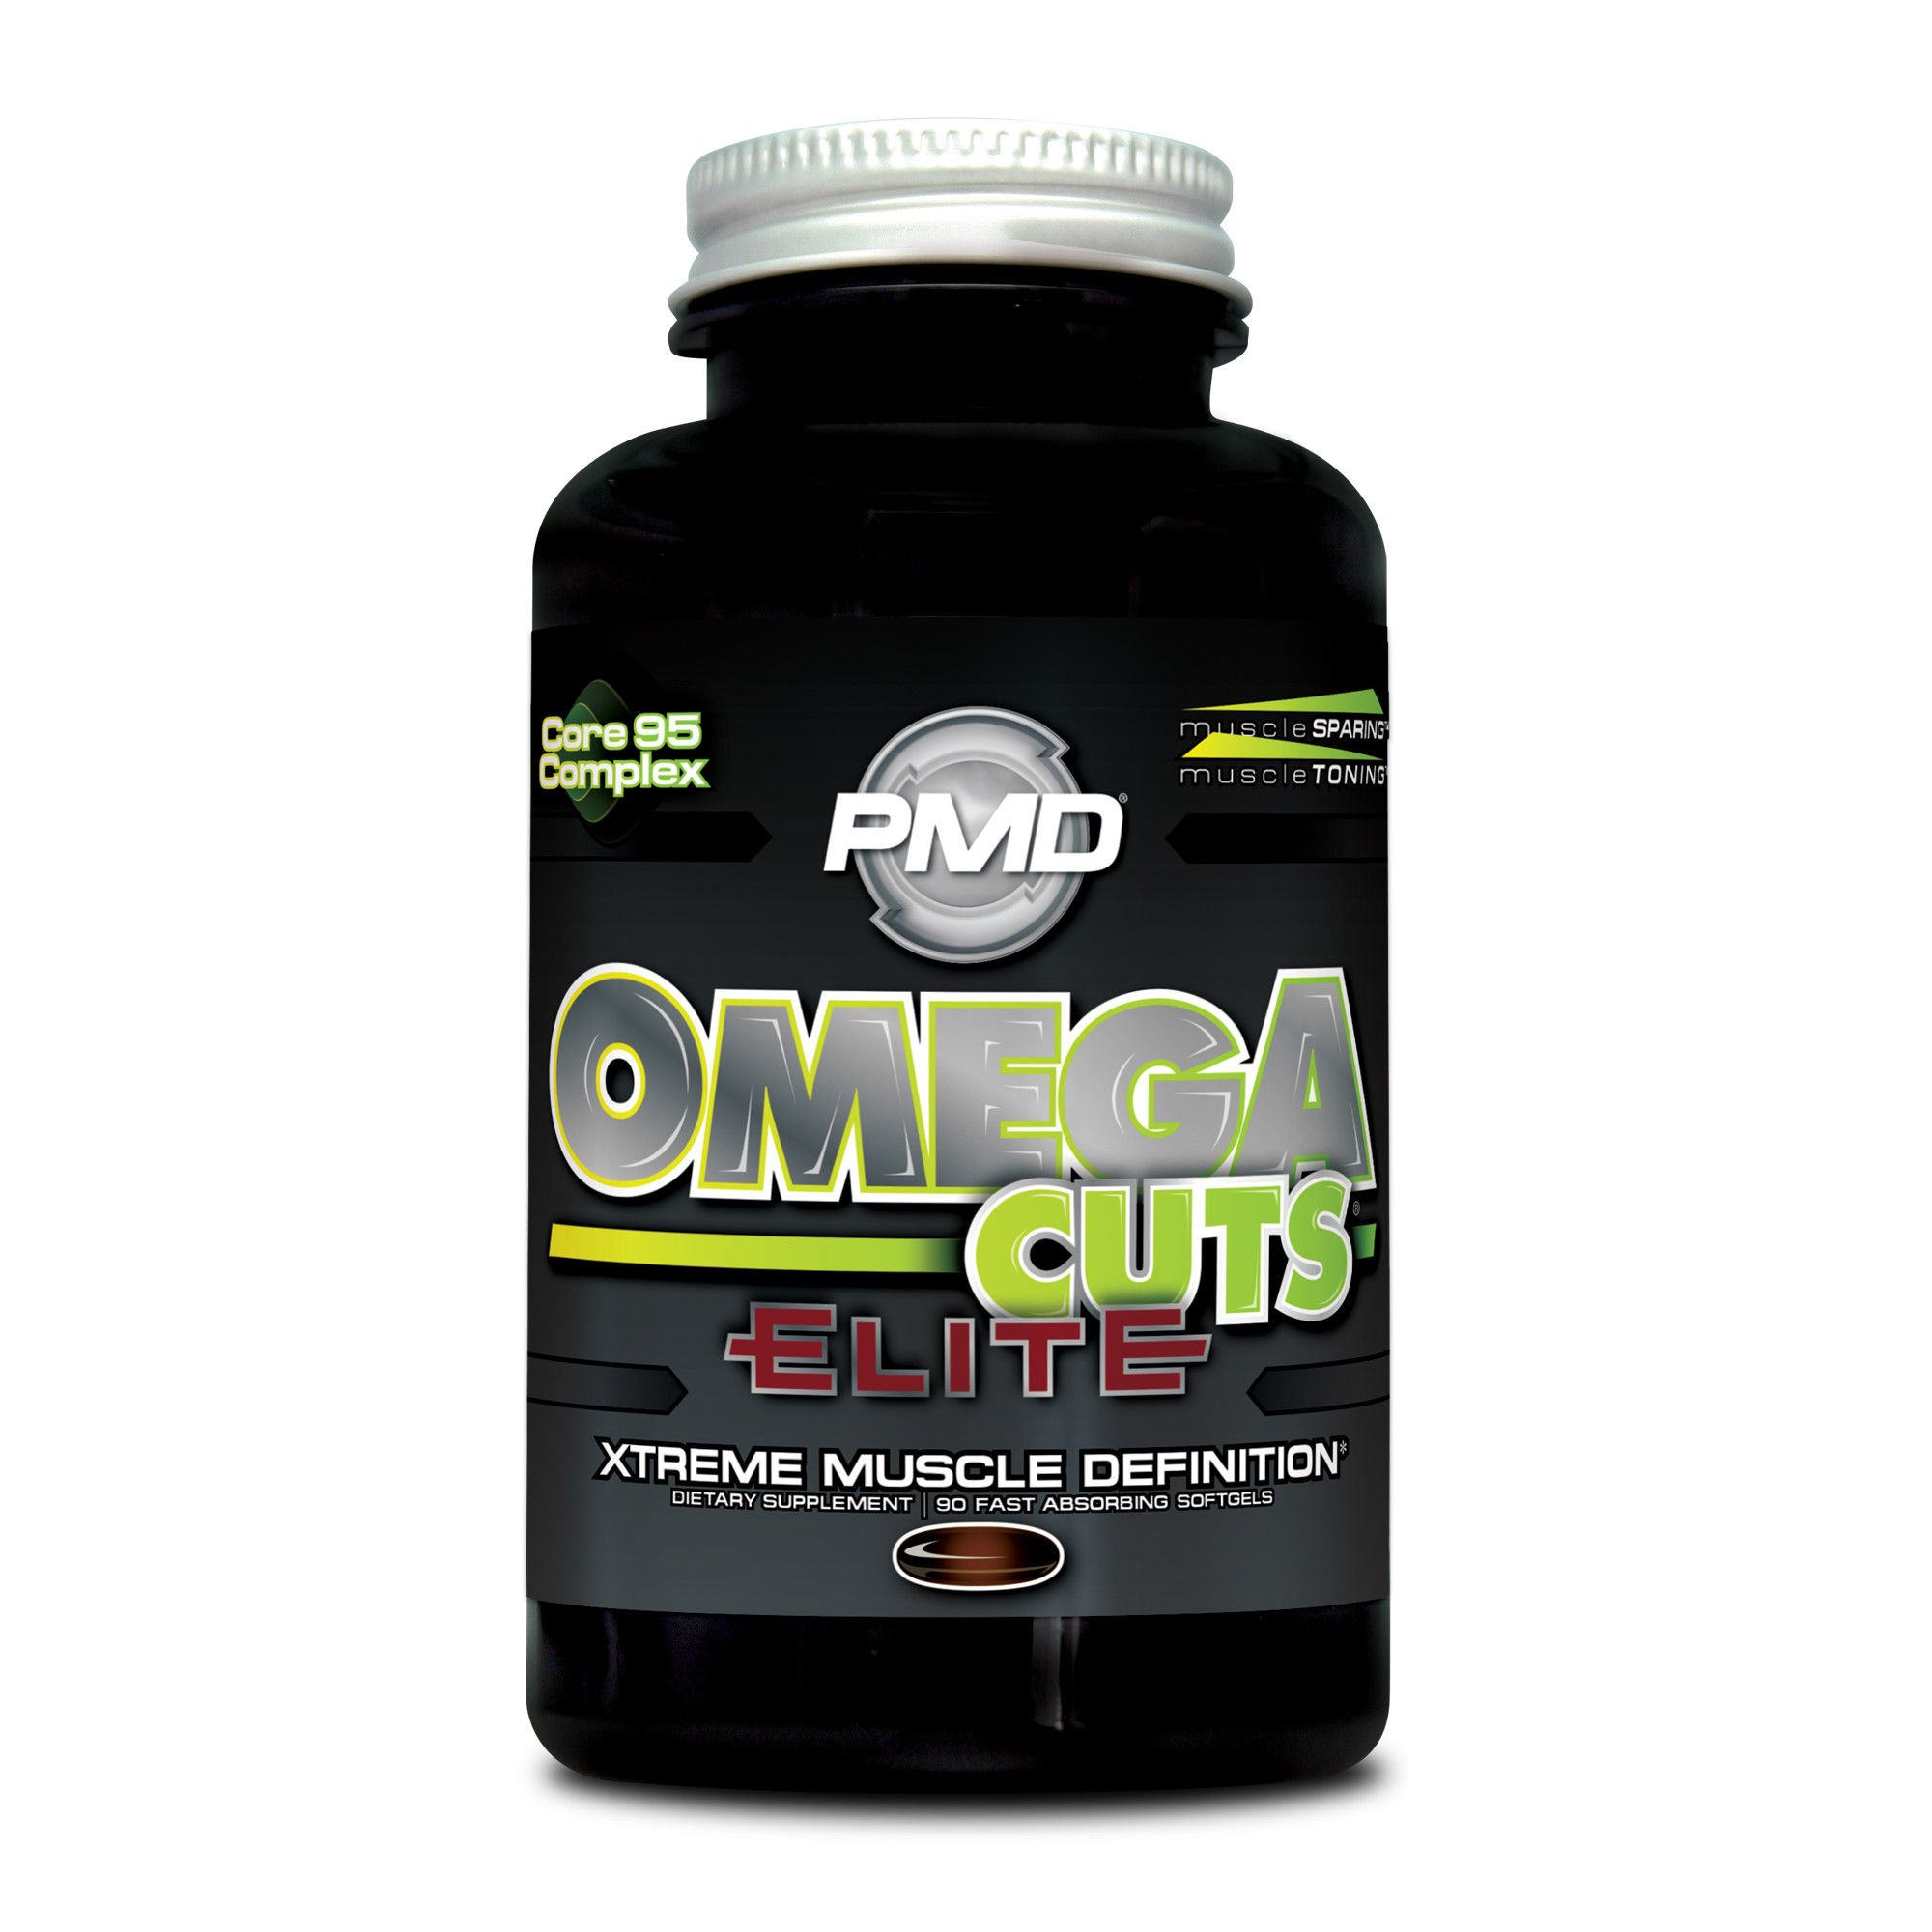 PMD Sports Omega Cuts Elite Zero Stimulant, Maximum Strength MCT, CLA and Omega Fatty Acid Complex Formula for Muscle Definition and Maintenance - 90 Softgels